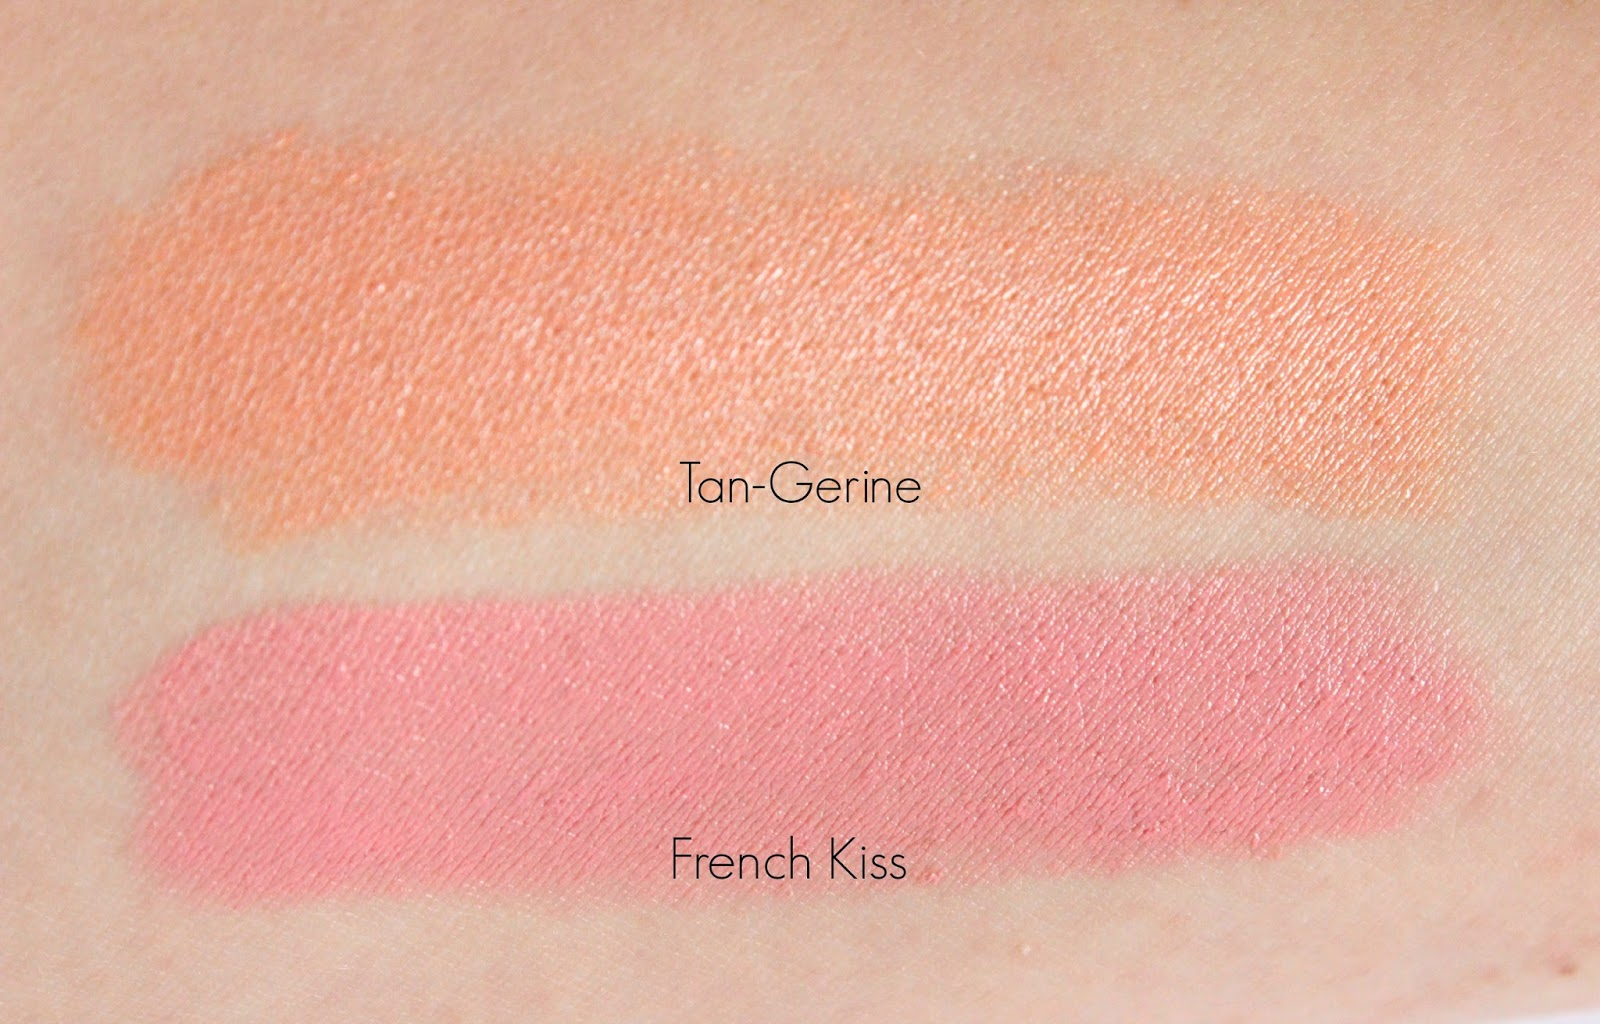 NYX High Voltage Lipstick in French Kiss and Tan-Gerine